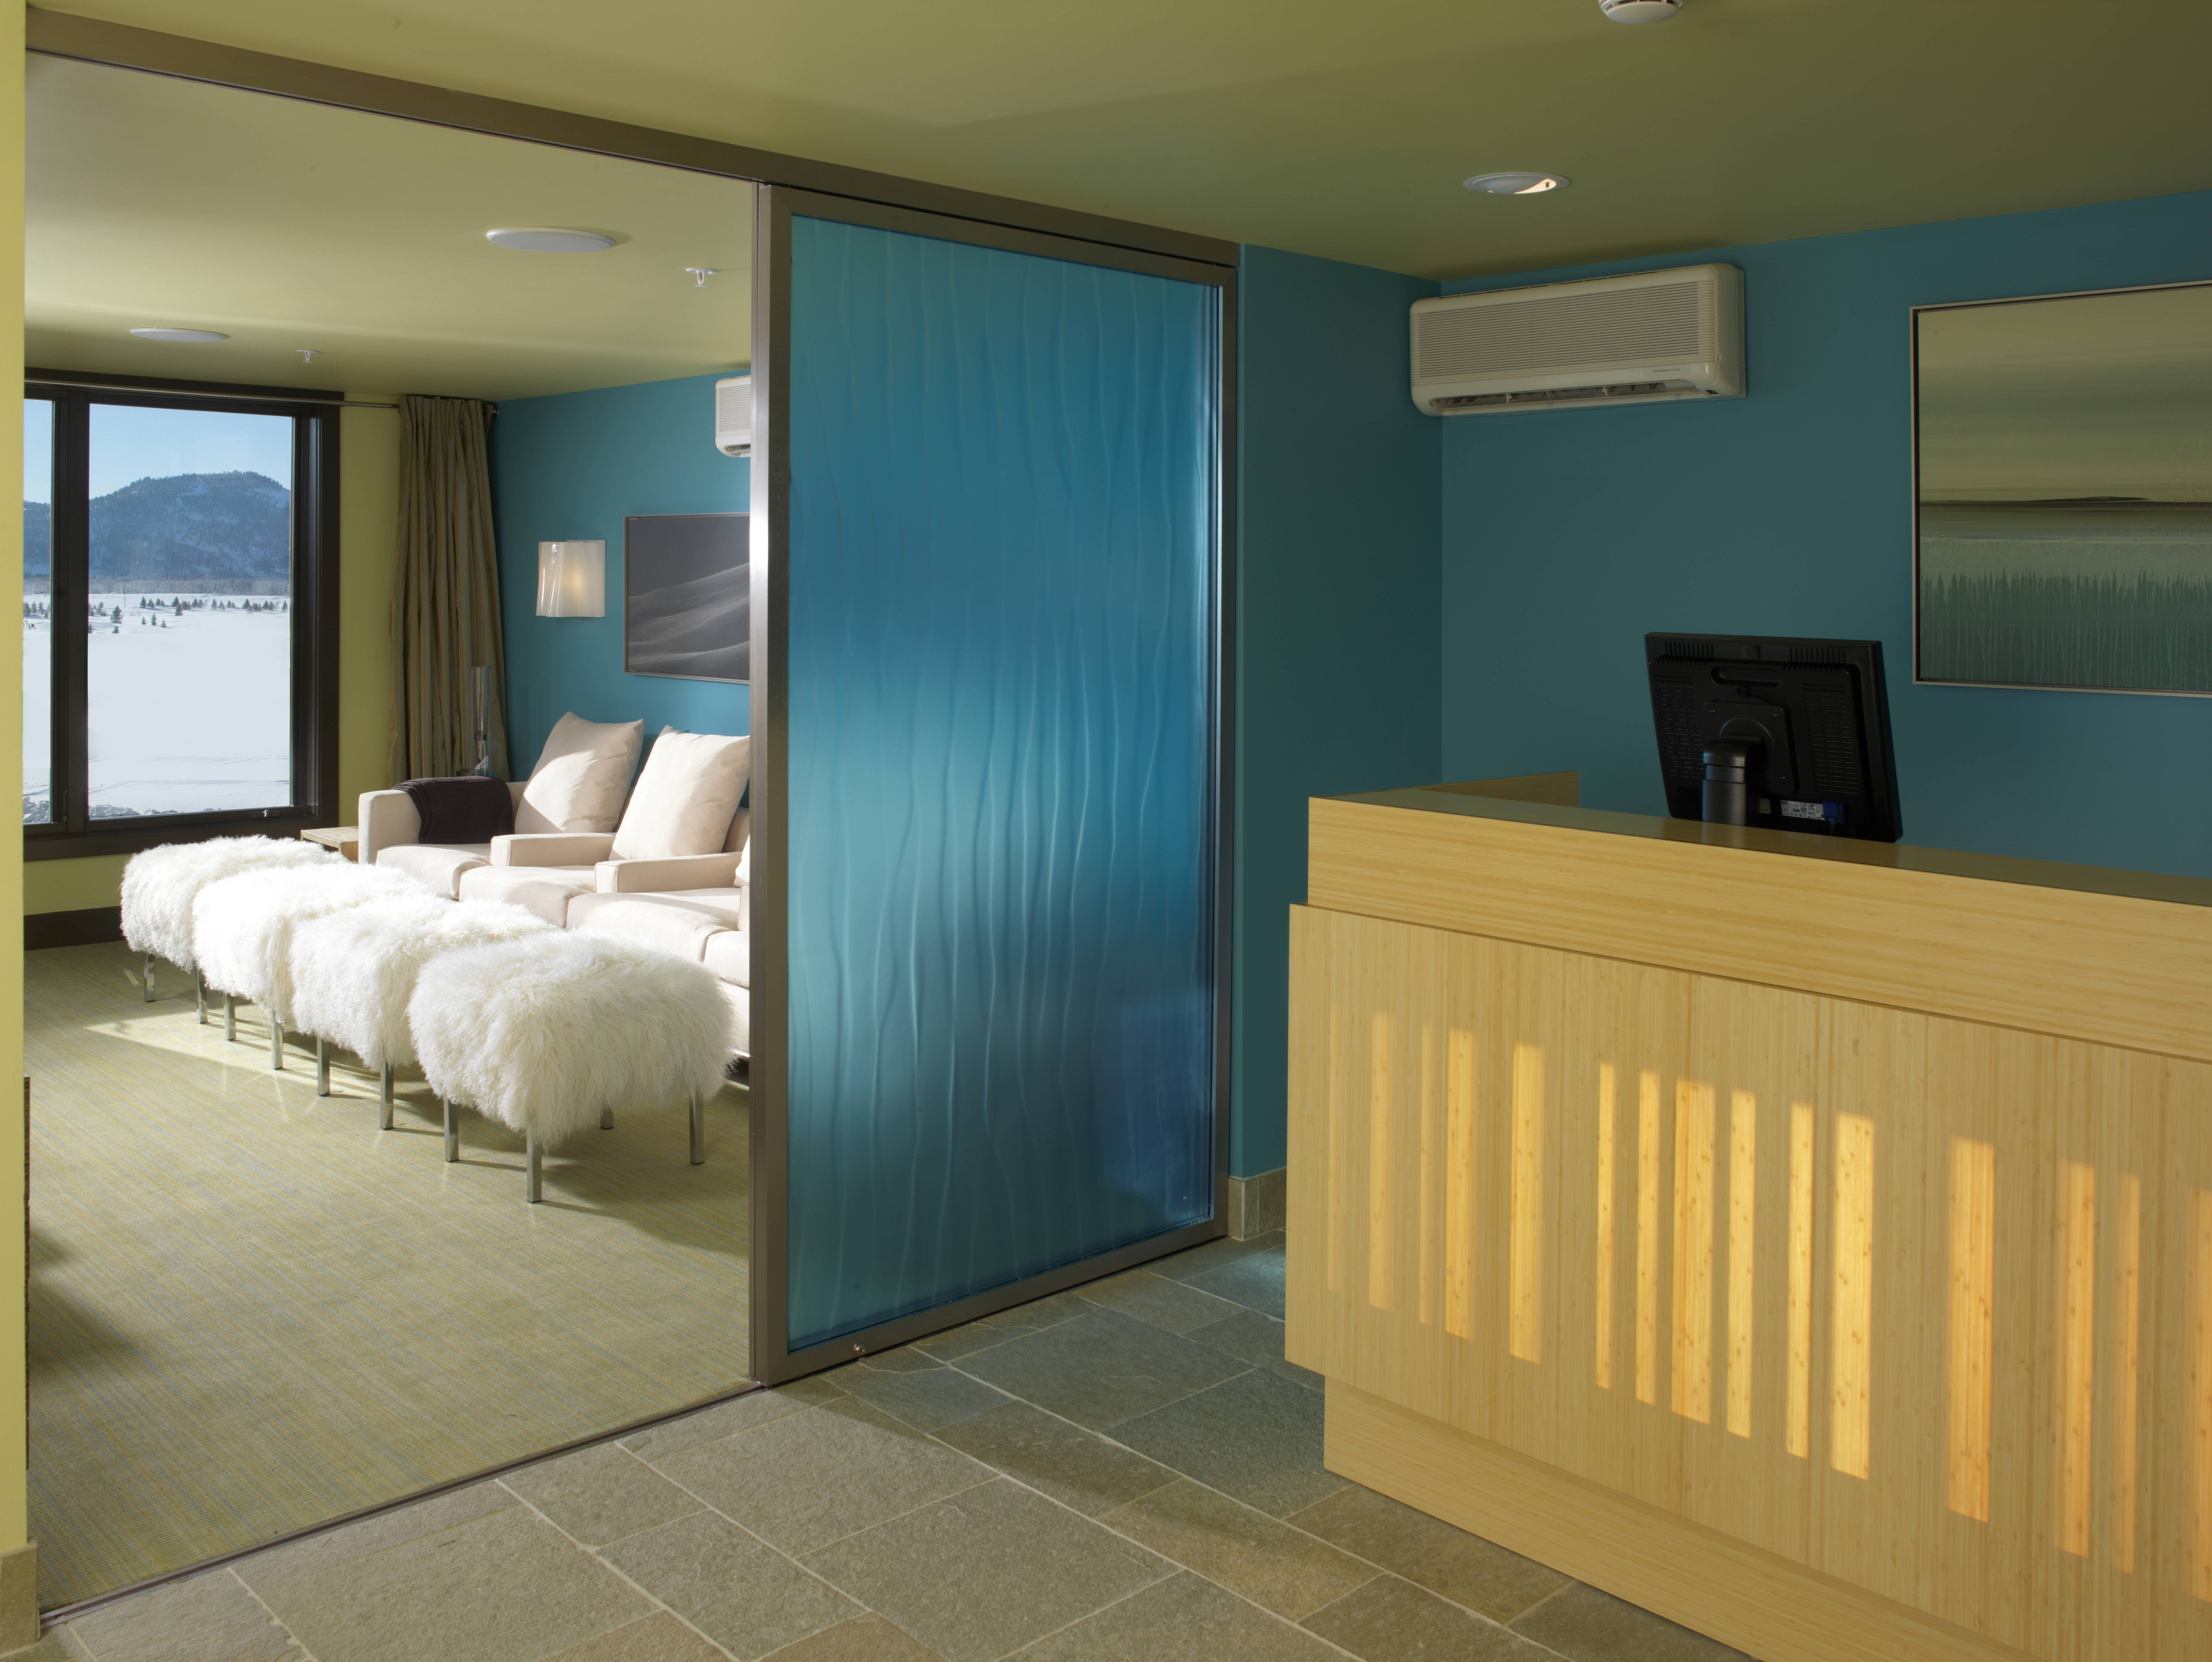 chill Spa - 16 Photos & 23 Reviews - Day Spas - 1224 ... - Yelp